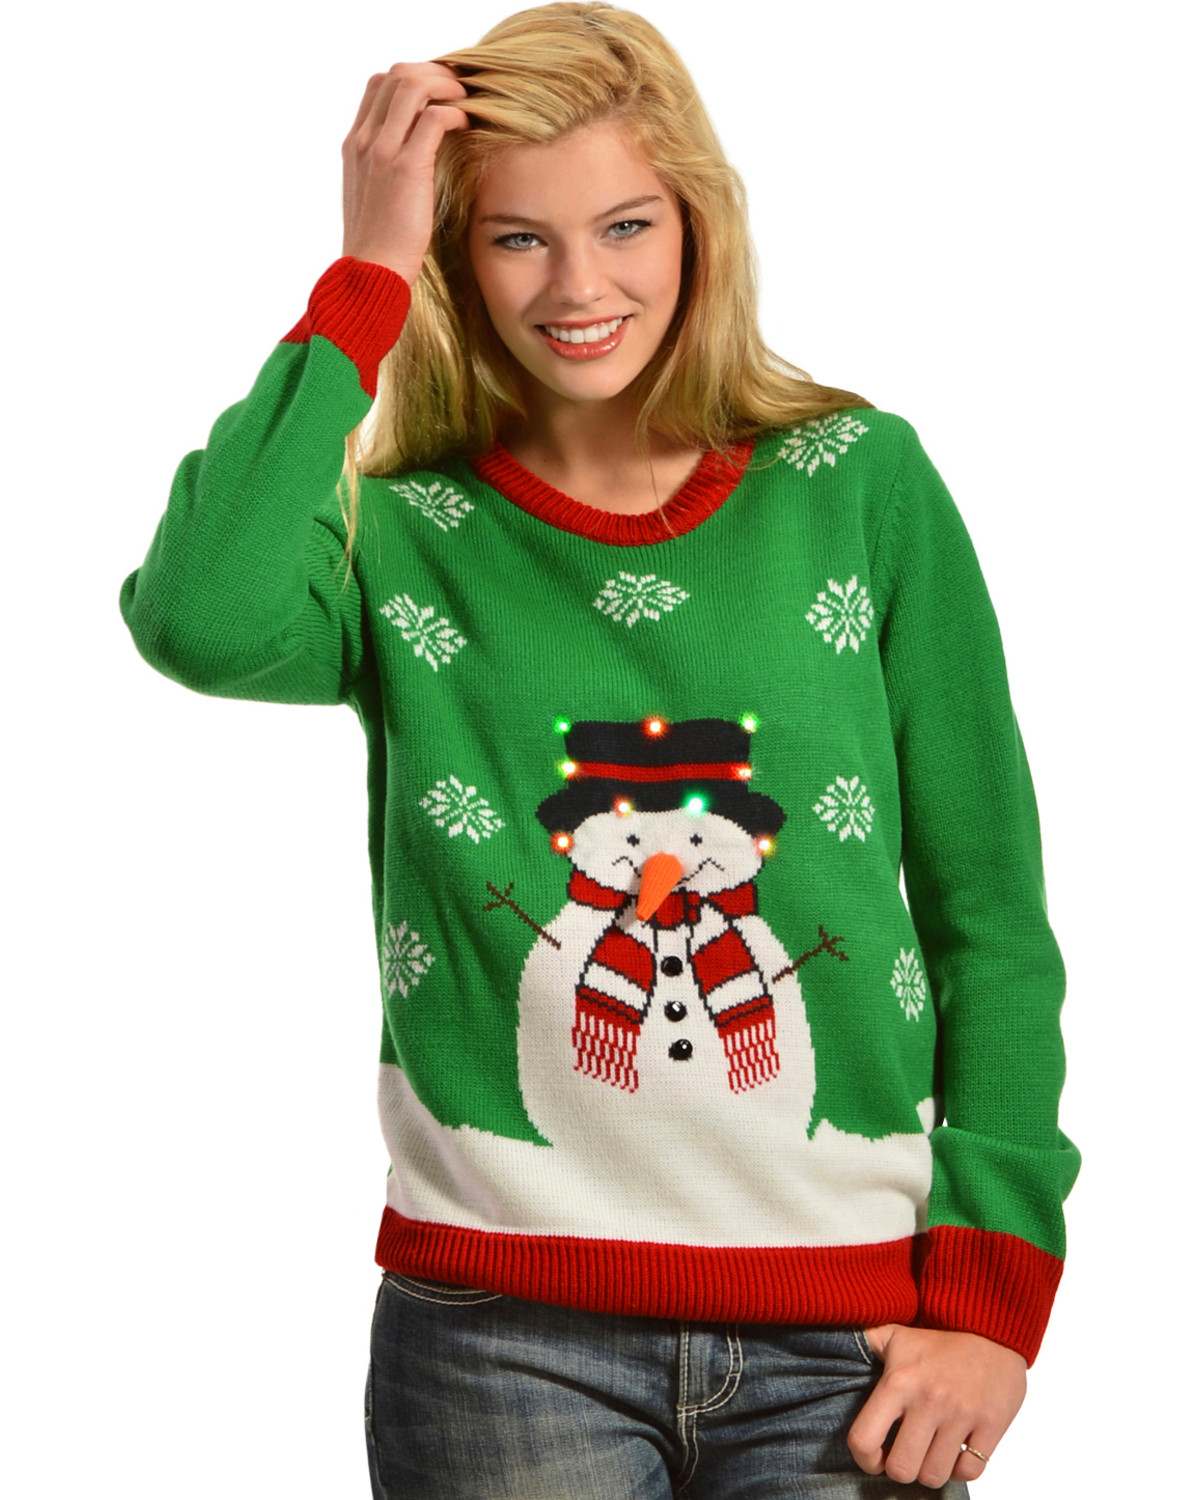 Light it up christmas sweater